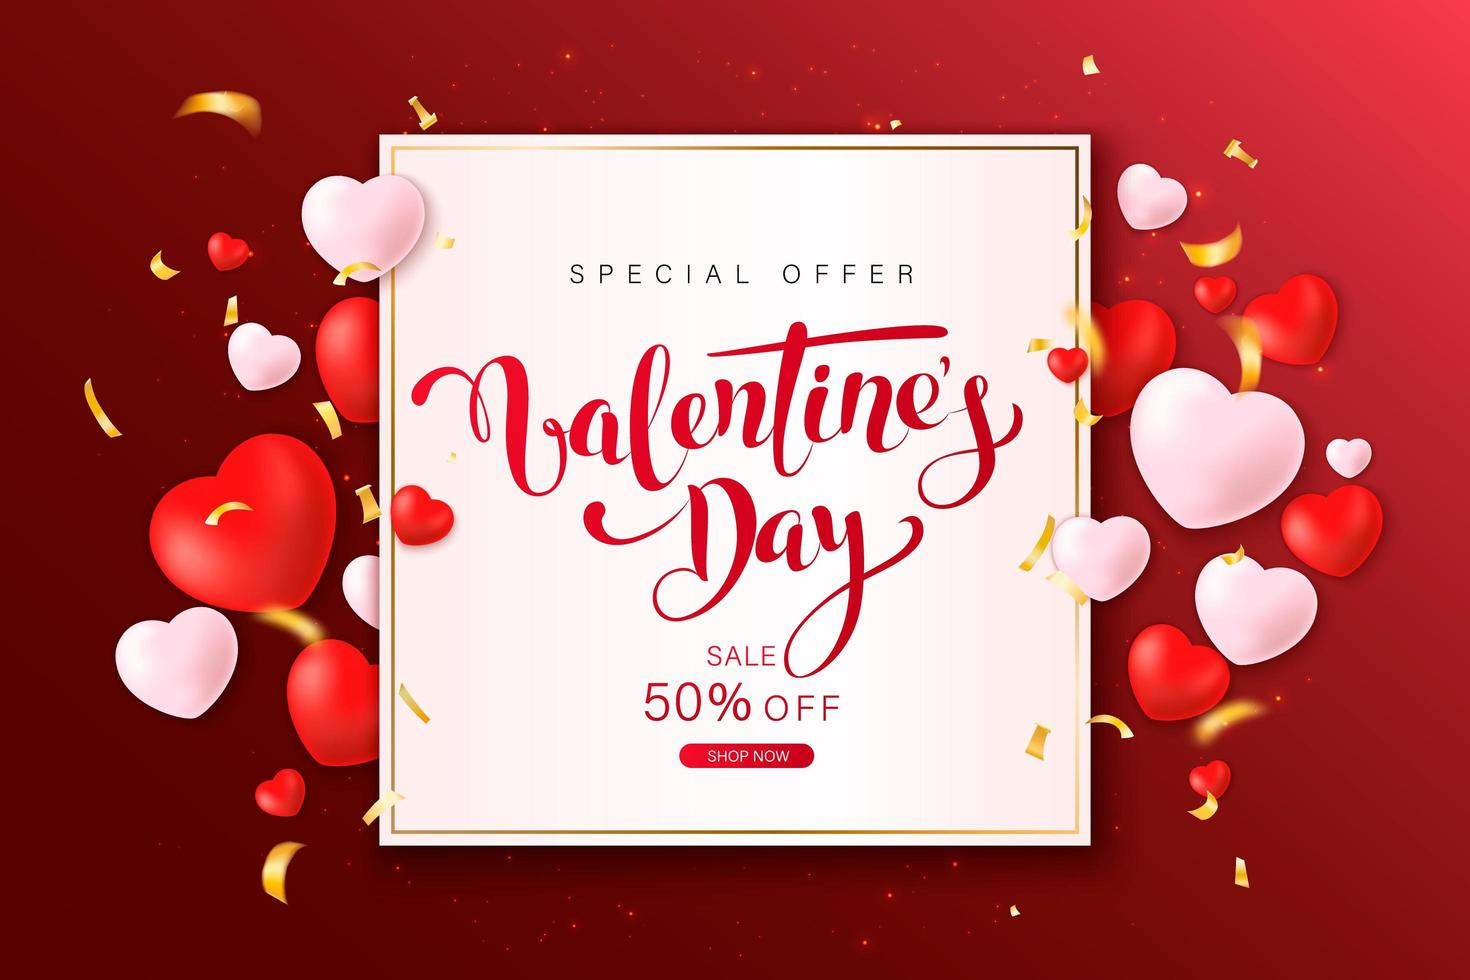 Happy Valentine's Day greeting card design vector